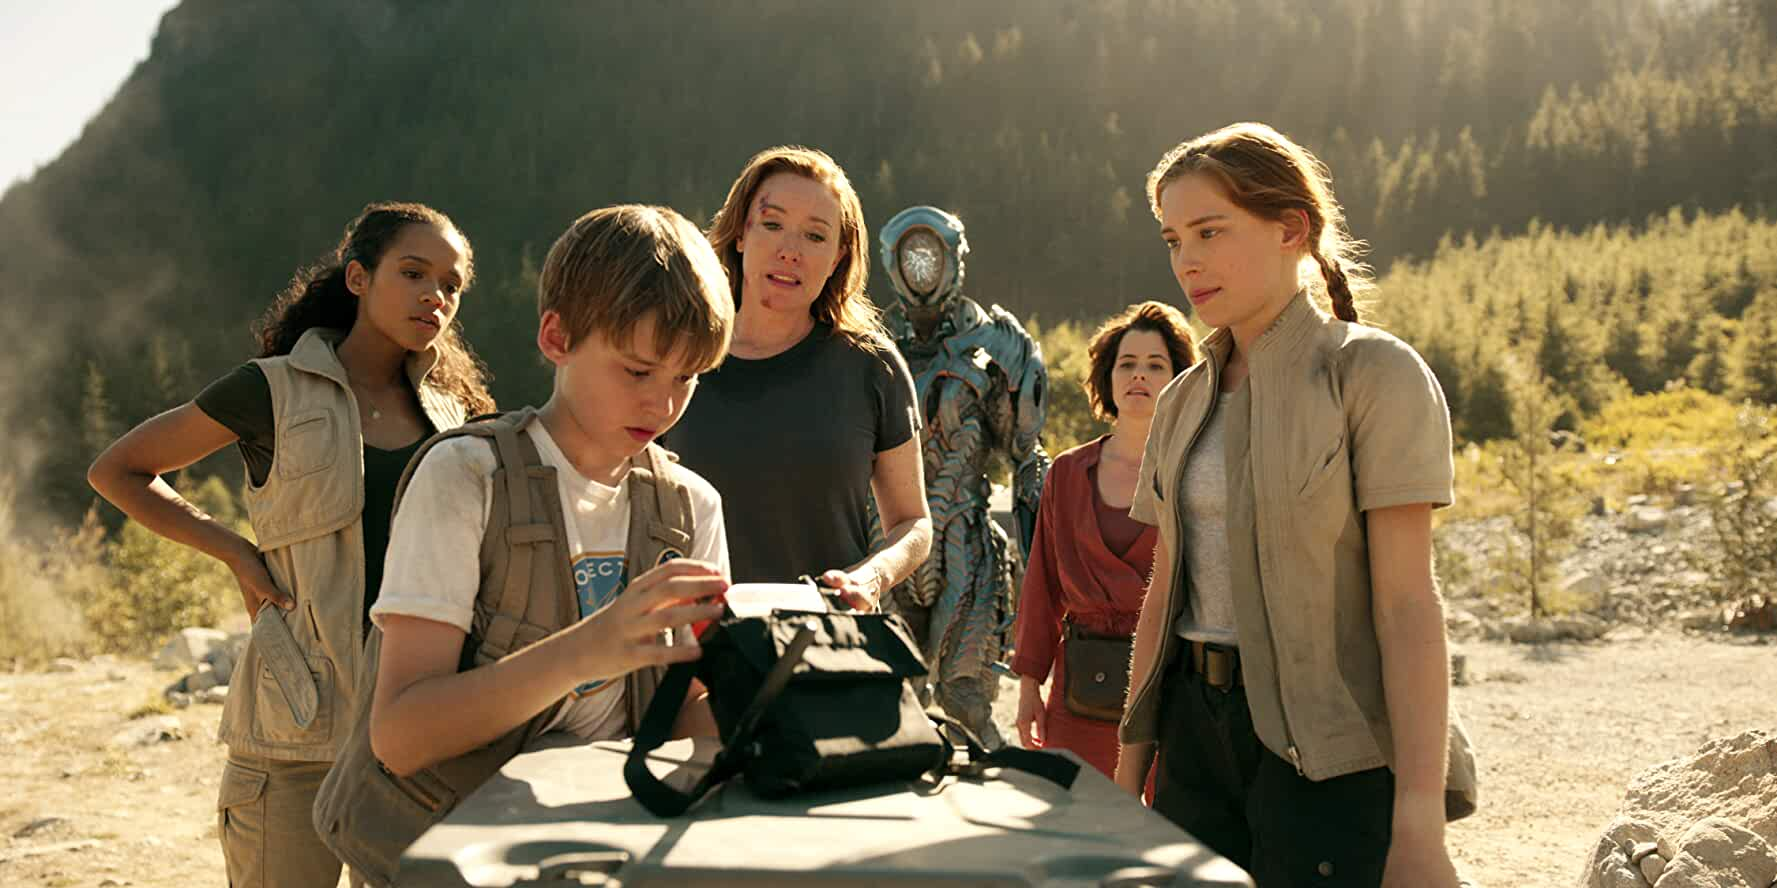 Parker Posey, Molly Parker, Maxwell Jenkins, Mina Sundwall, and Taylor Russell in Lost in Space (2018)